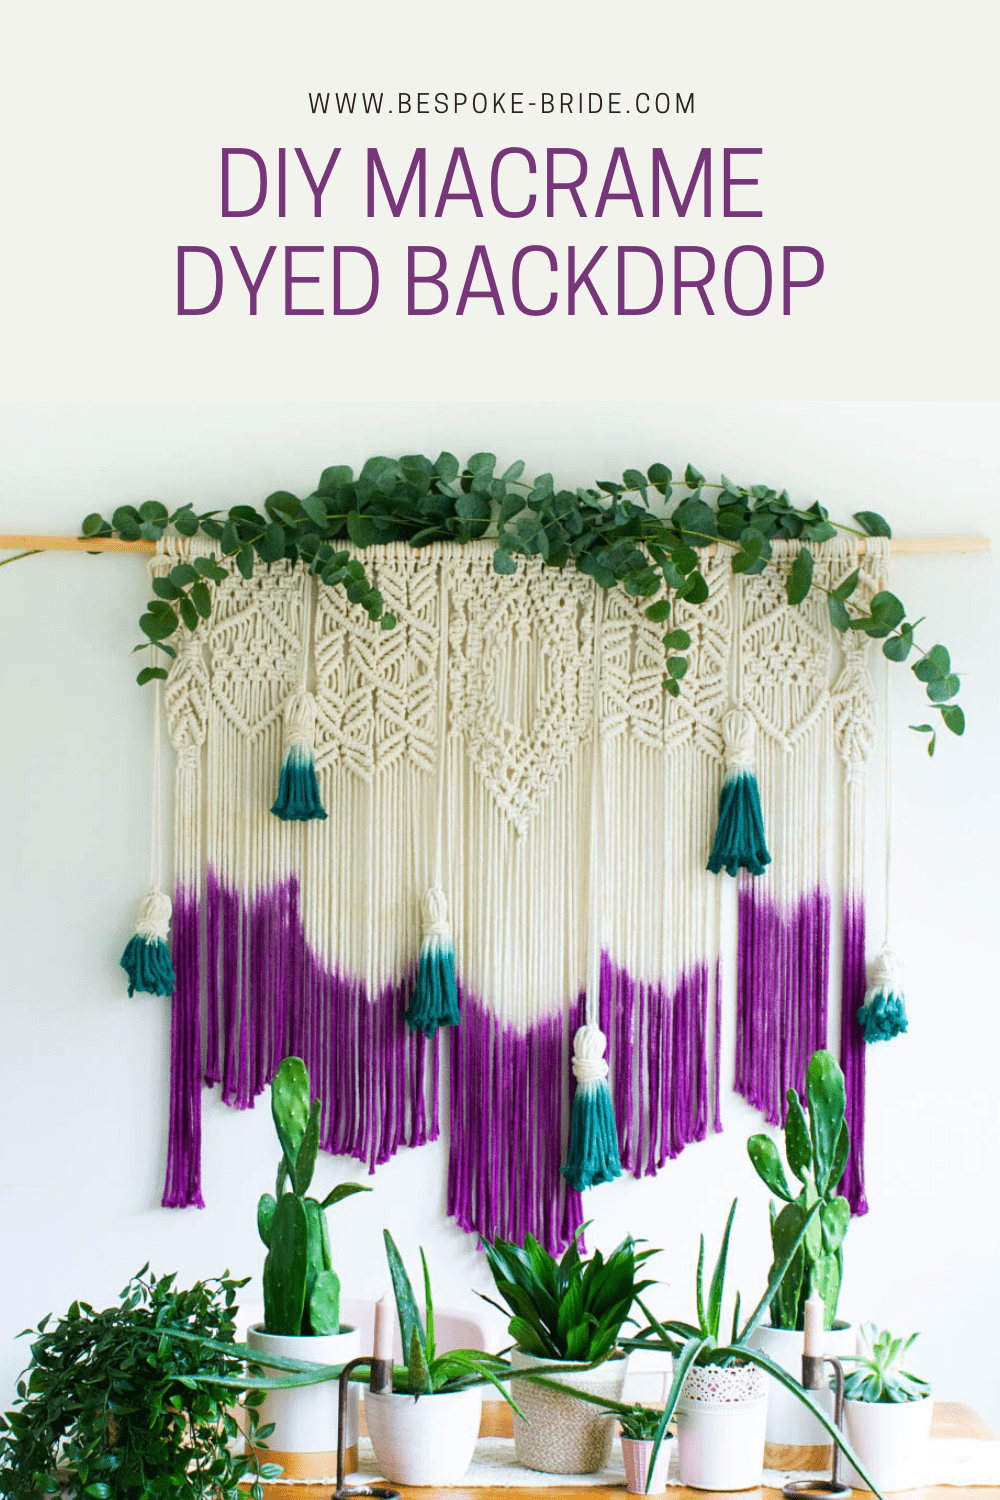 Learn how to make a DIY dyed macrame wall hanging backdrop with this tutorial, perfect for bohemian wedding decor